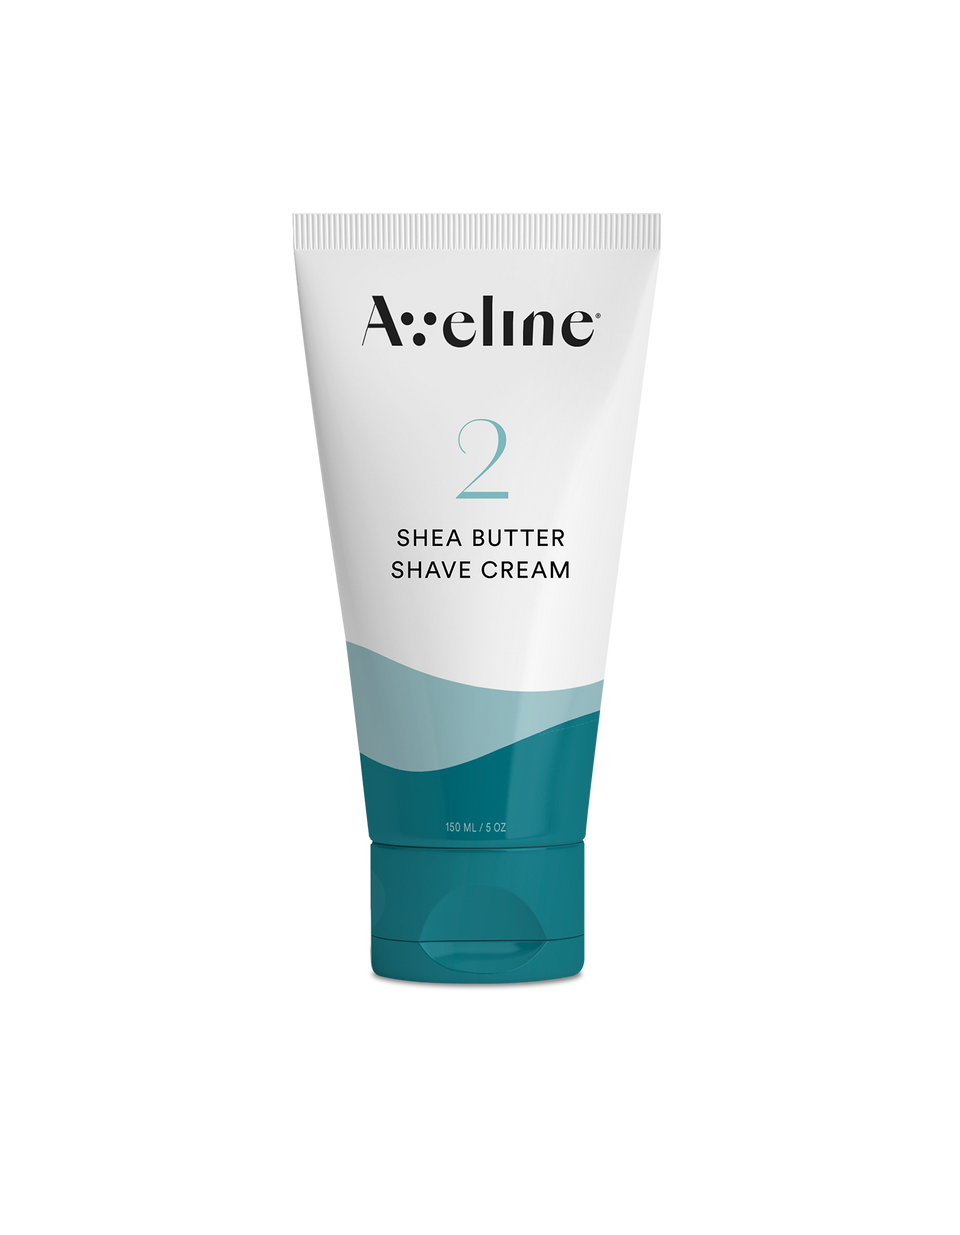 Aveline Shea Butter Shave Cream 5oz